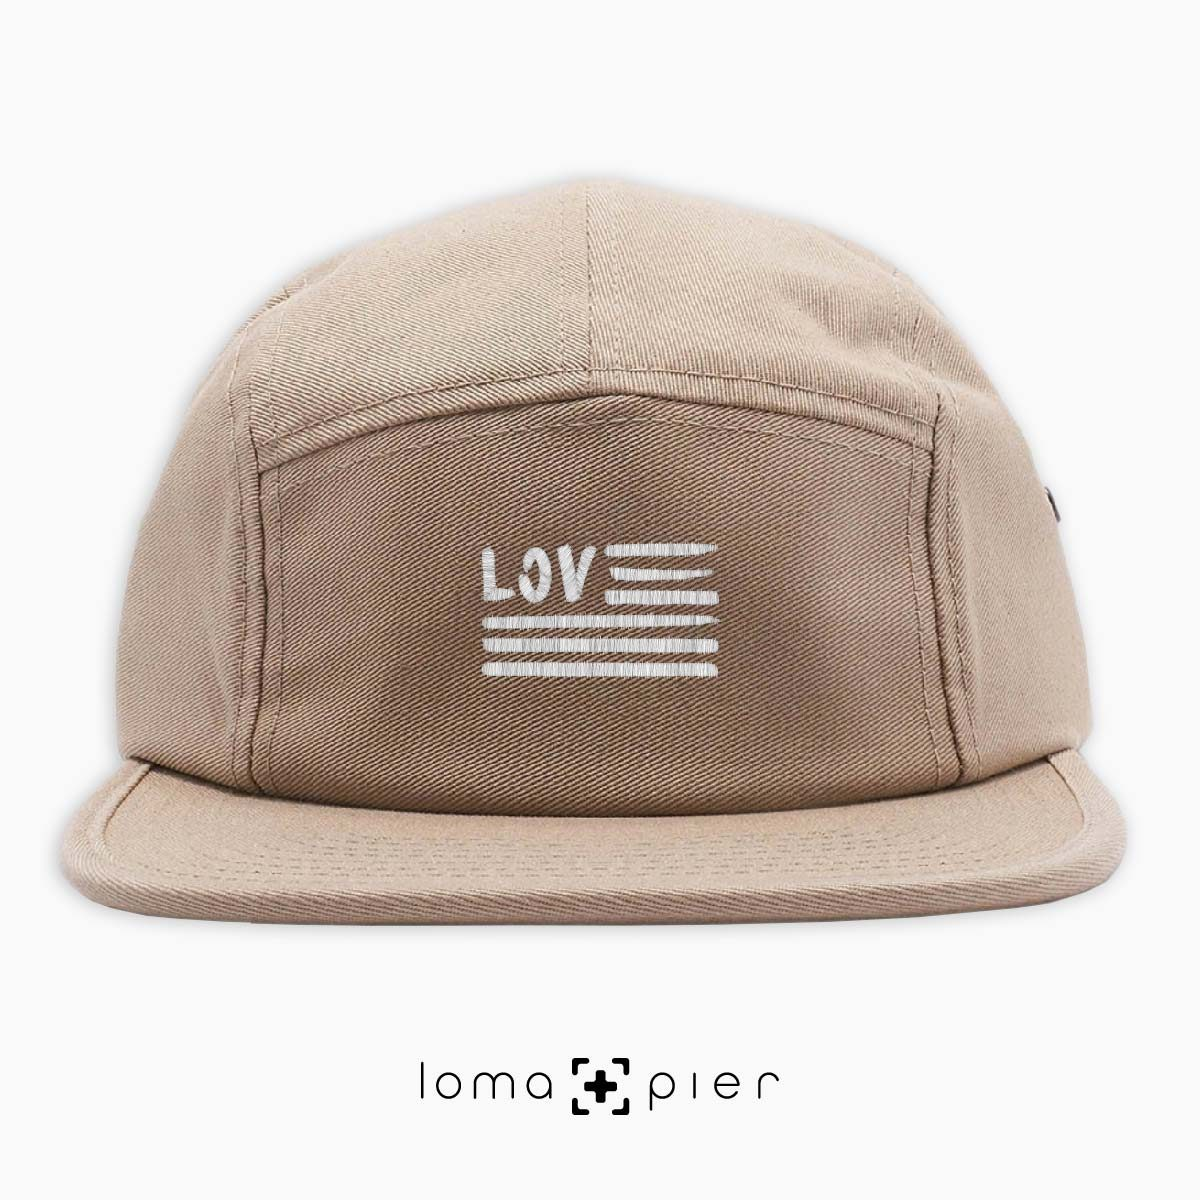 AMERICAN LOVE icon embroidered on a khaki cotton 5-panel hat with white thread by loma+pier hat store